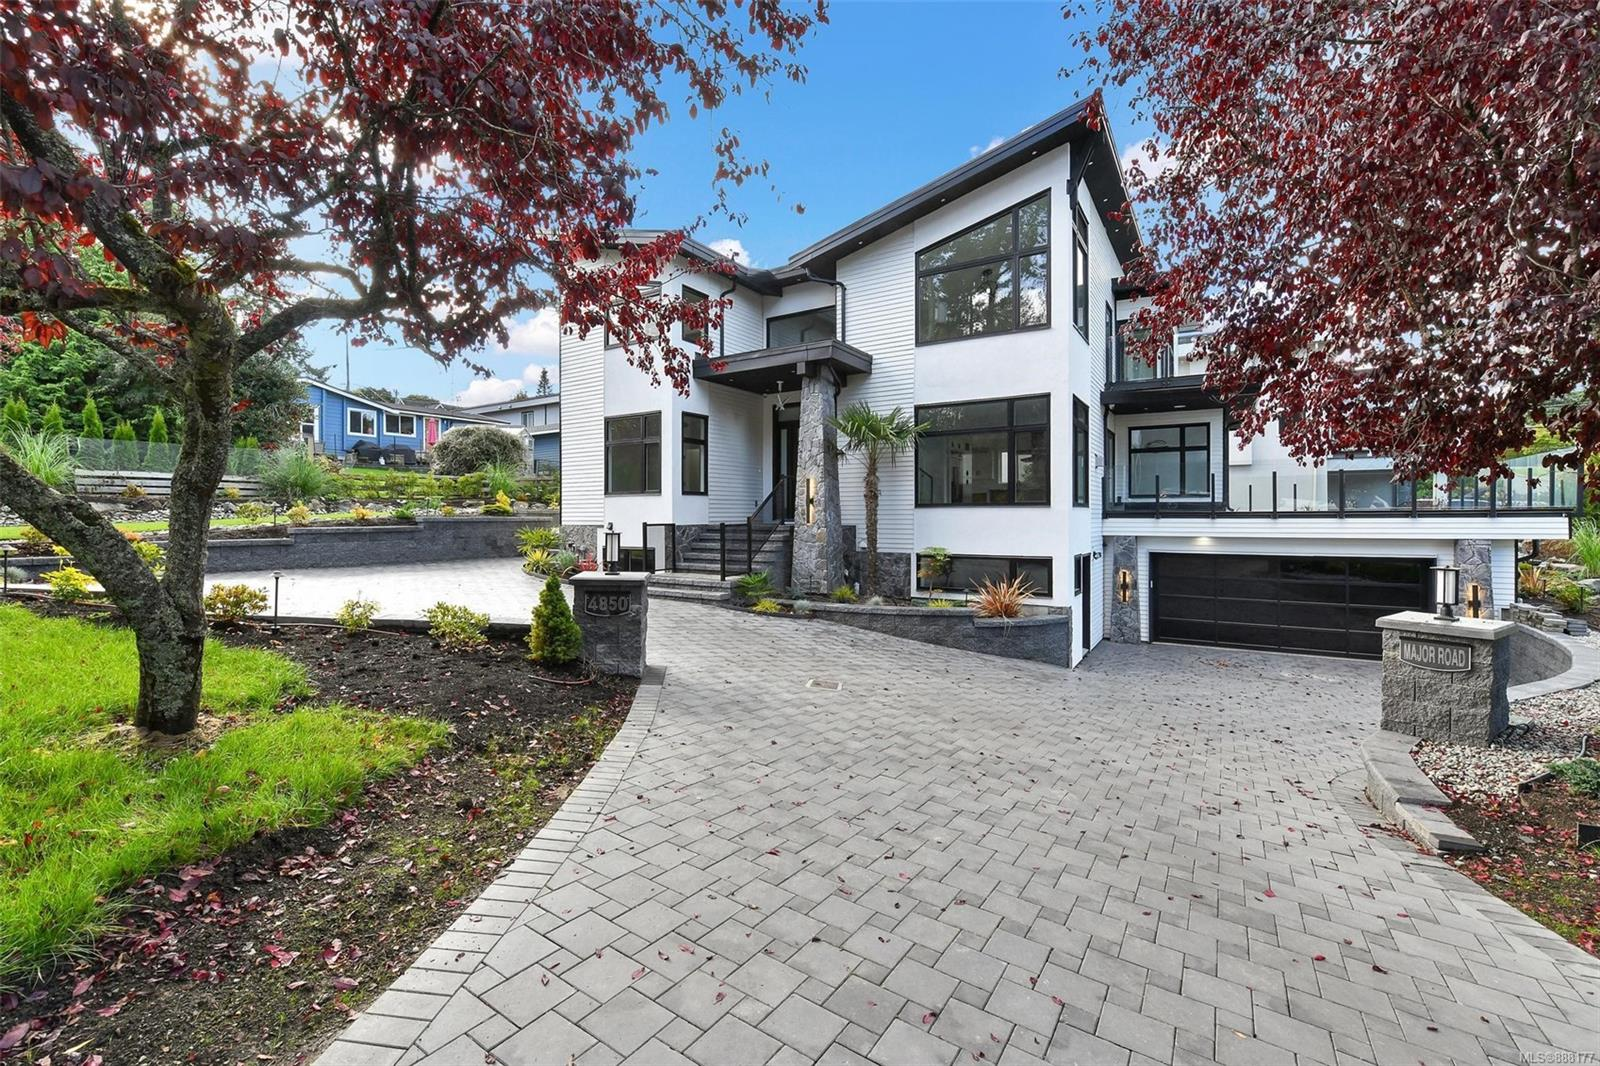 Welcome to 4850 Major Rd: the brand new ocean view home in Cordova Bay! On the main floor, you will find the gourmet kitchen with large island, high end KitchenAid appliances including oversize fridge& wine cellar,  garbage compactor, spicy kitchen, large bedroom/office with W.I.C and two living room/family room with gas fireplace. The top floor offers a beautiful Master retreat, 2 additional bedrooms with their own ensuites. Enjoy great views of the ocean, islands and mountains from master room and the balcony .Downstairs features a large media room, powder room, oversized double-car garage, and self-contained 1-bedroom suite. House also come with security camera system, heated tile flooring, water features, low maintain yards, high efficient furnace, hot water on demand, and central vacuum&AC unit roughed in. Great location in a quiet cul-de-sac: 7 mins walk distance to the D'Arcy Lane Beach, 4 mins drive to Claremont Secondary School and 12 mins drive to Uvic. Must see in Person!!!